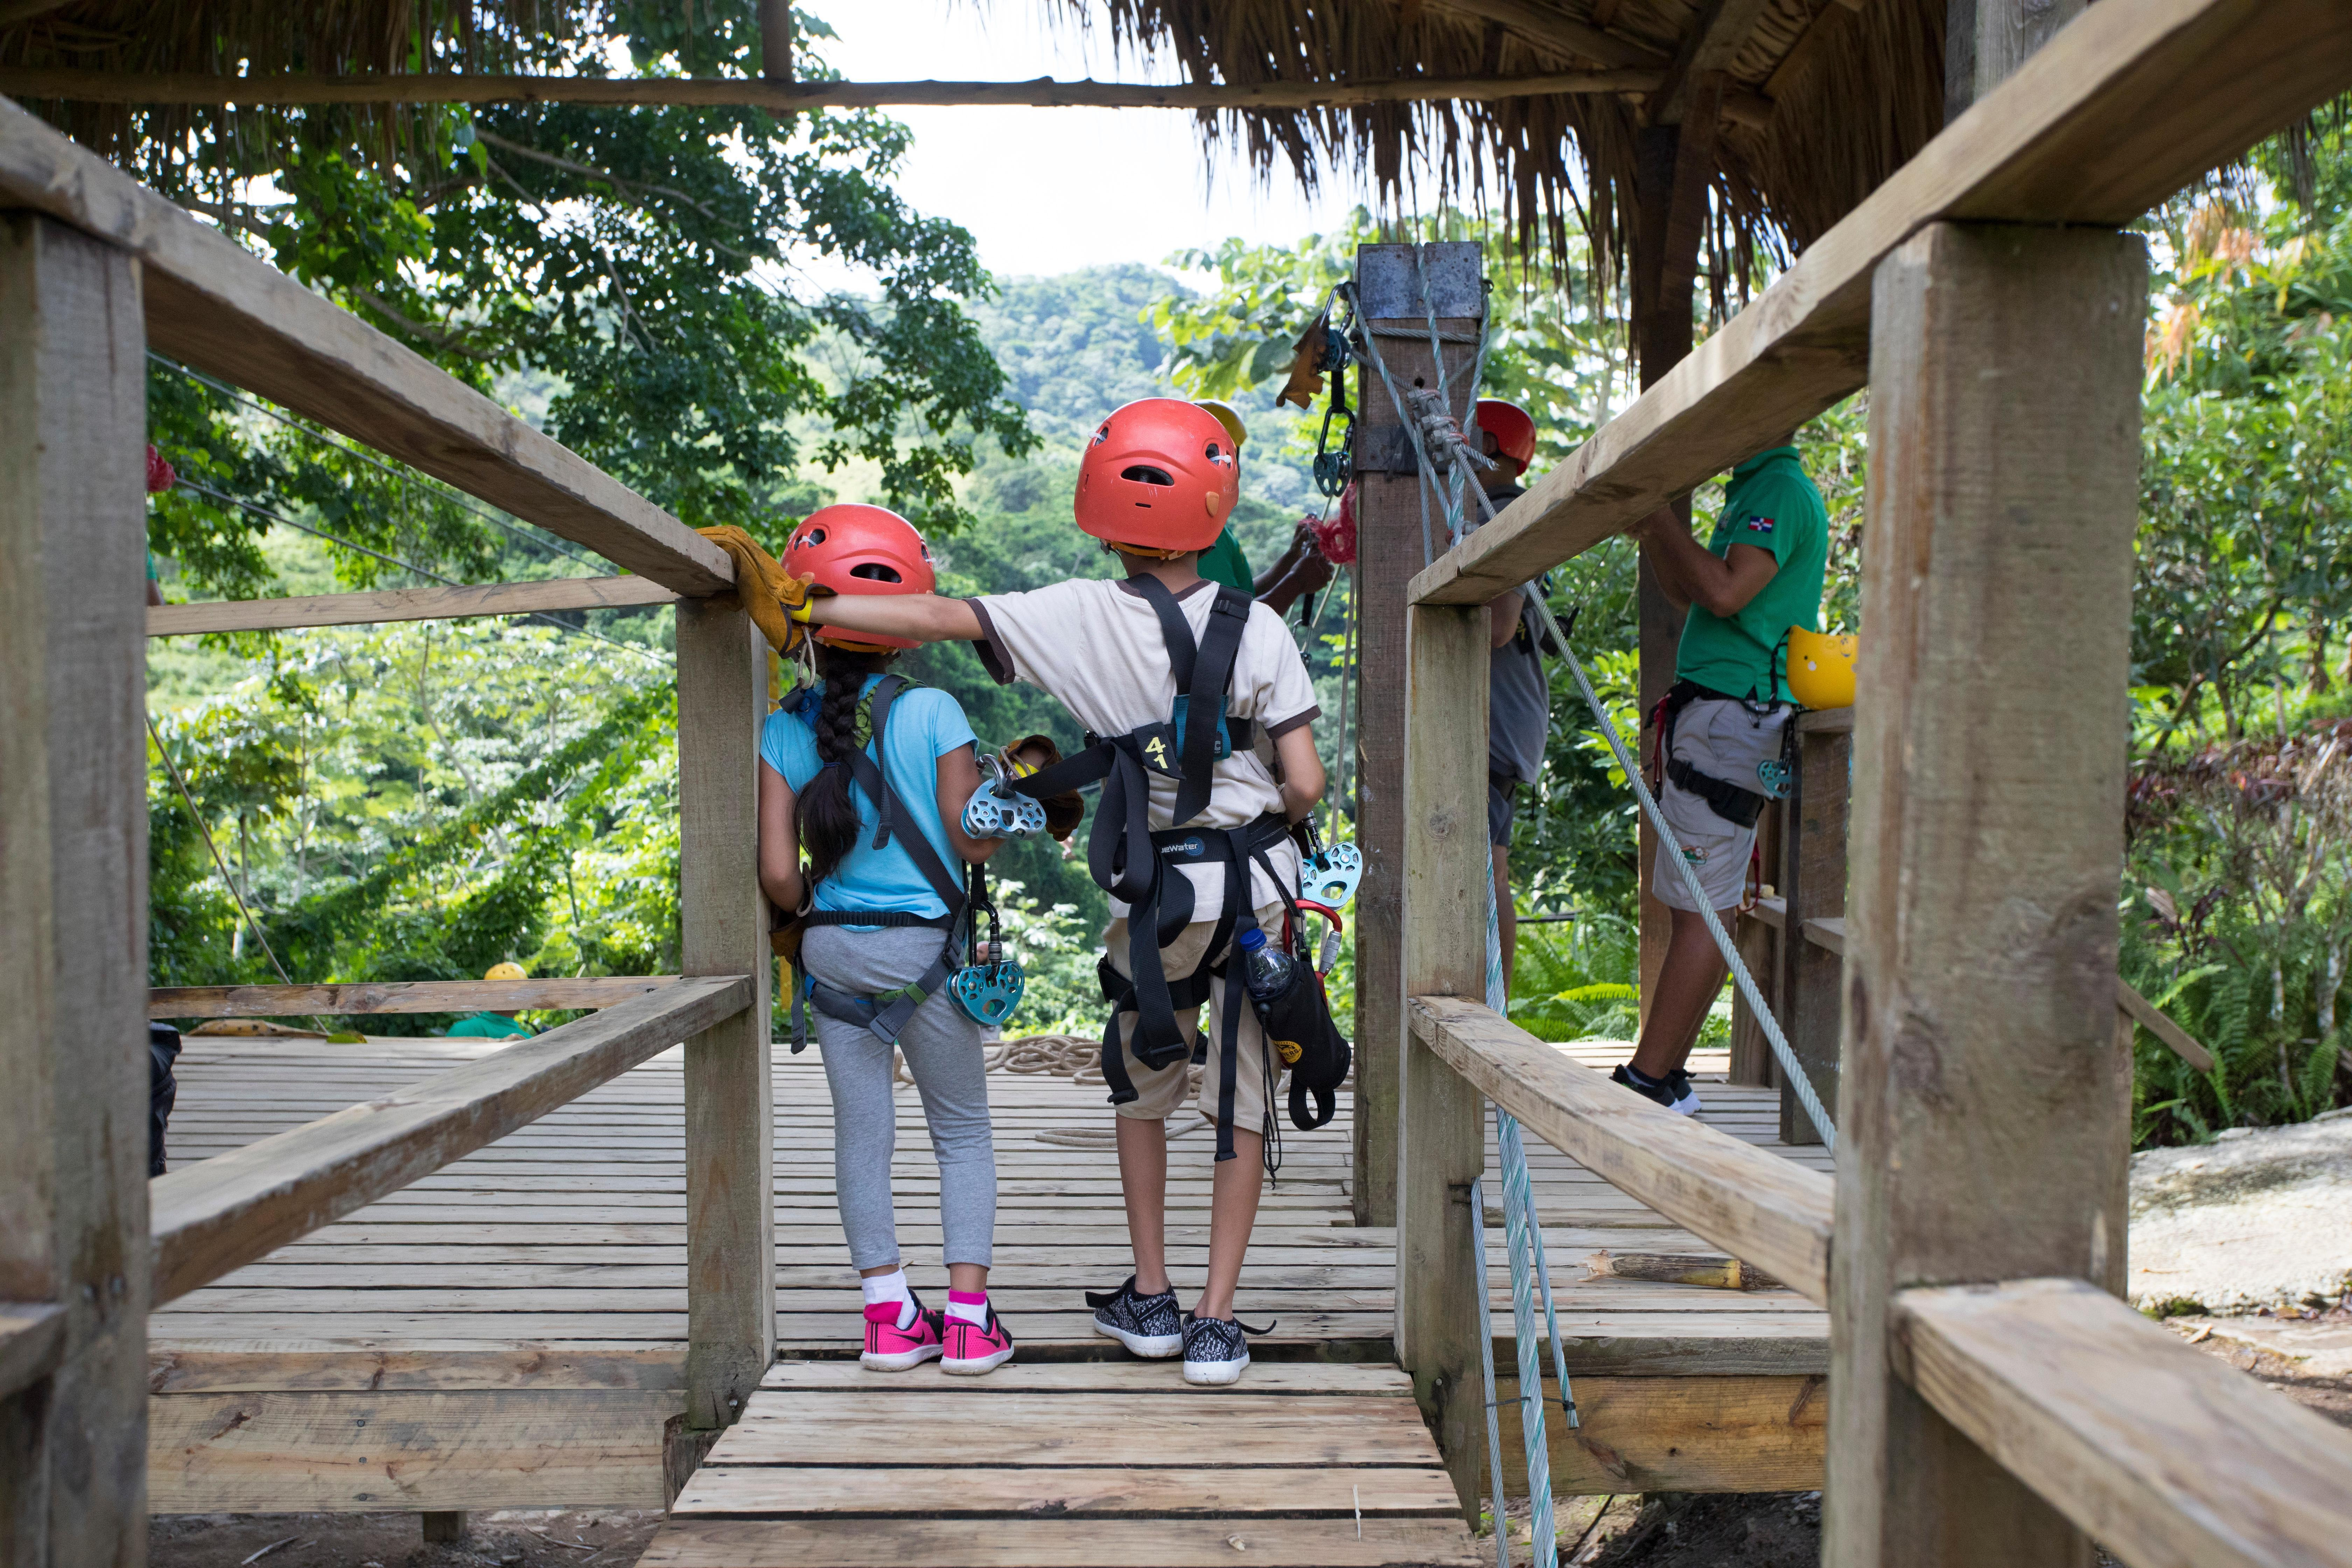 Things to Do in Punta Cana with Kids